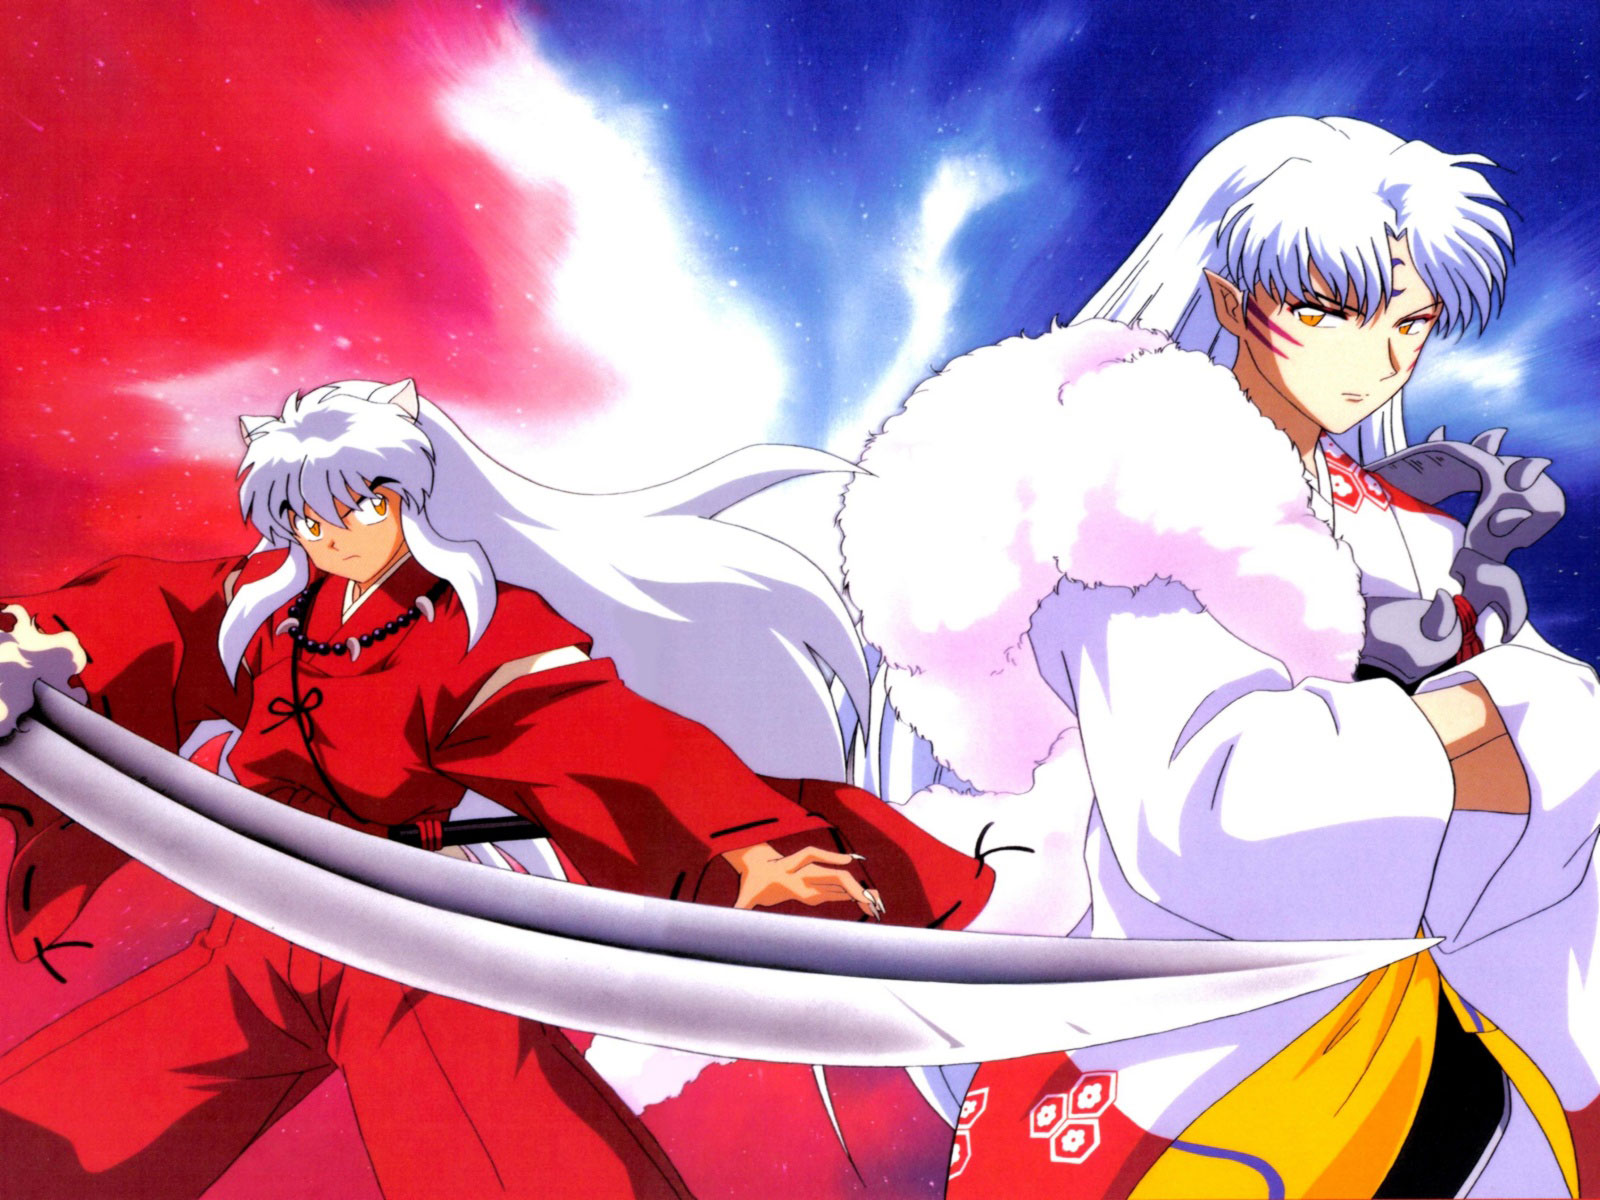 Inuyasha and kagome wallpaper hd 24438 baltana.